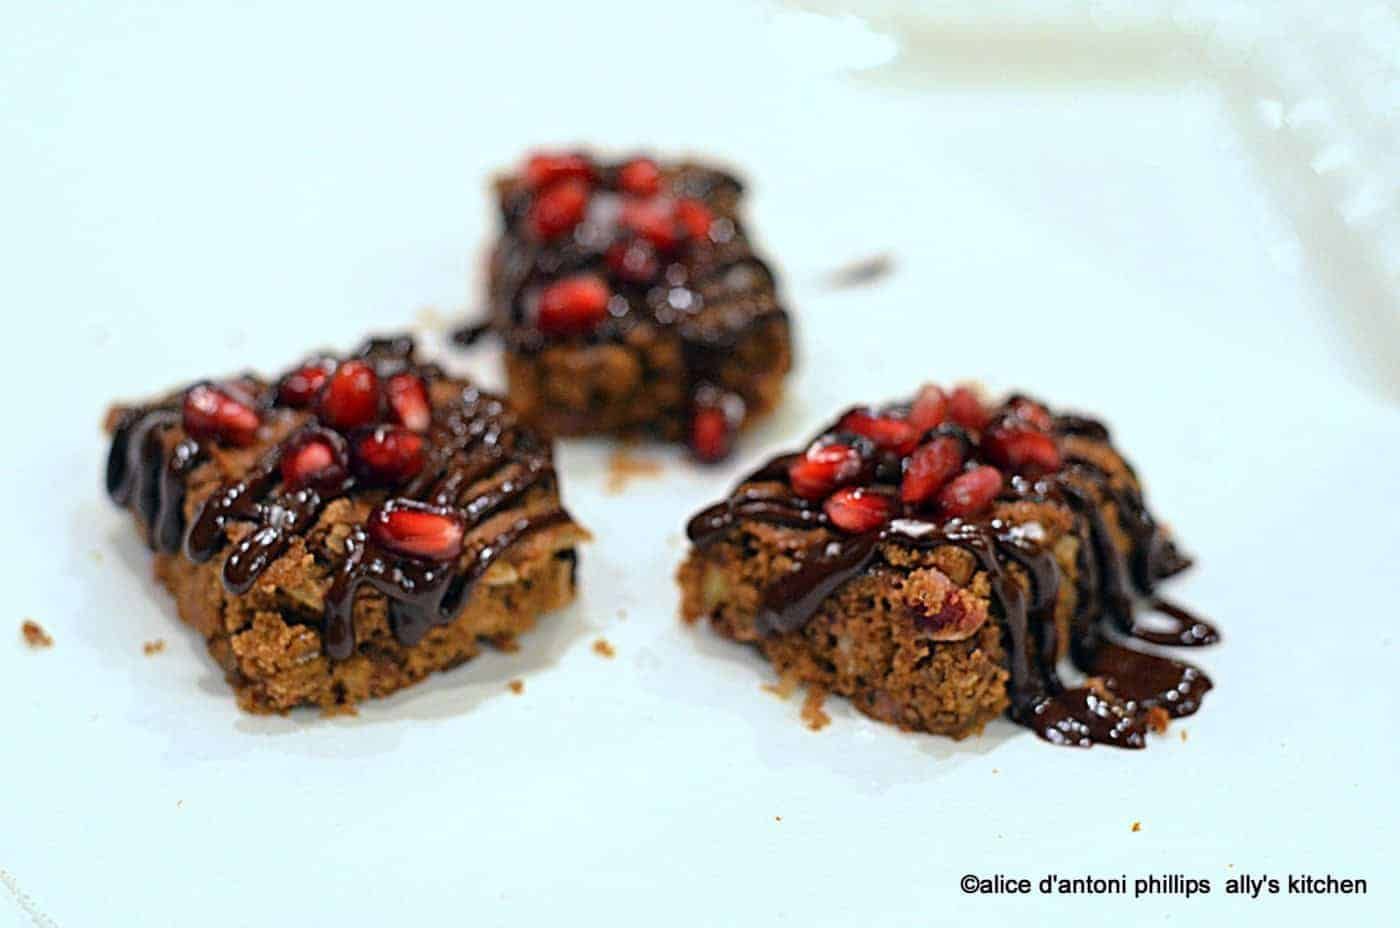 Bourbon Chocolate & Pomegranate Cake YummmeeZ